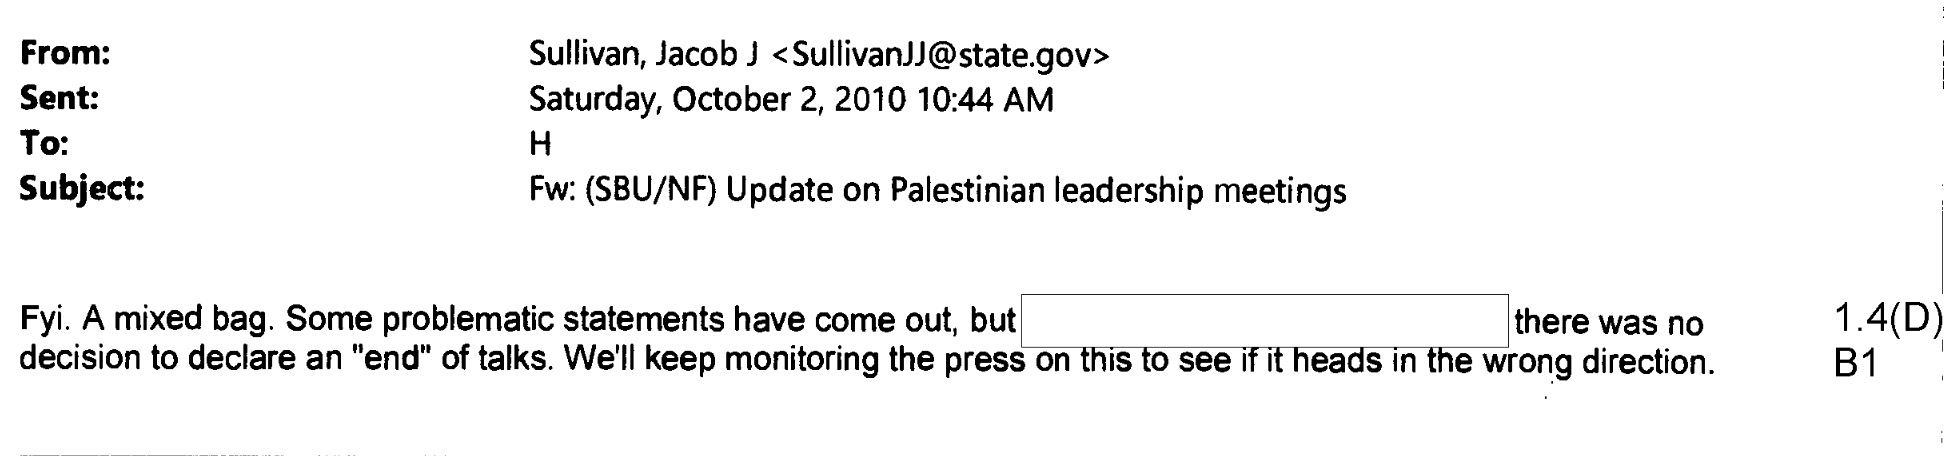 Email from Jake Sullivan to Hillary Clinton, Oct. 2, 2010, containing classified information (via State Department)